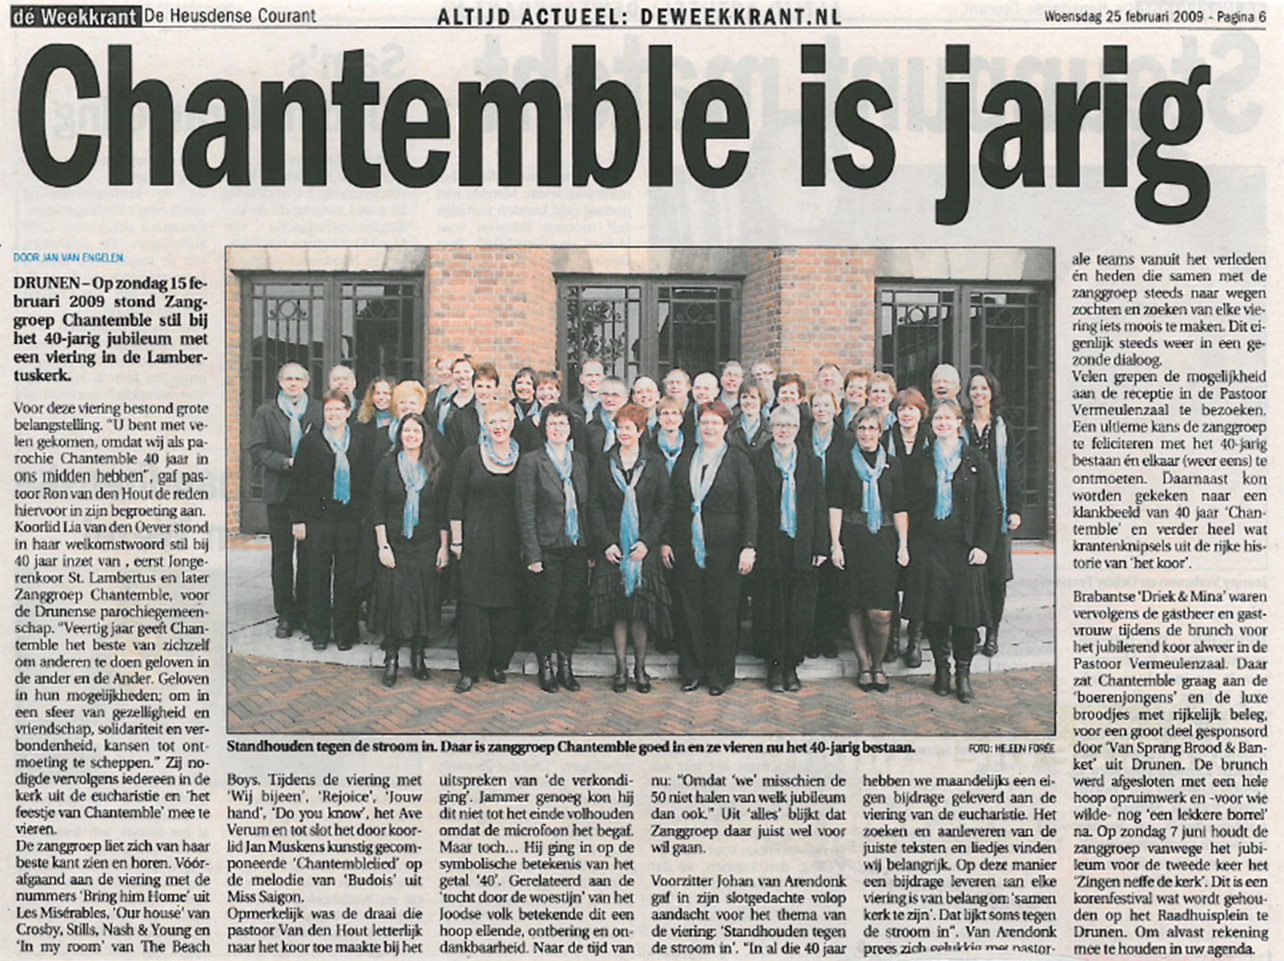 20090225 Chantemble is jarig